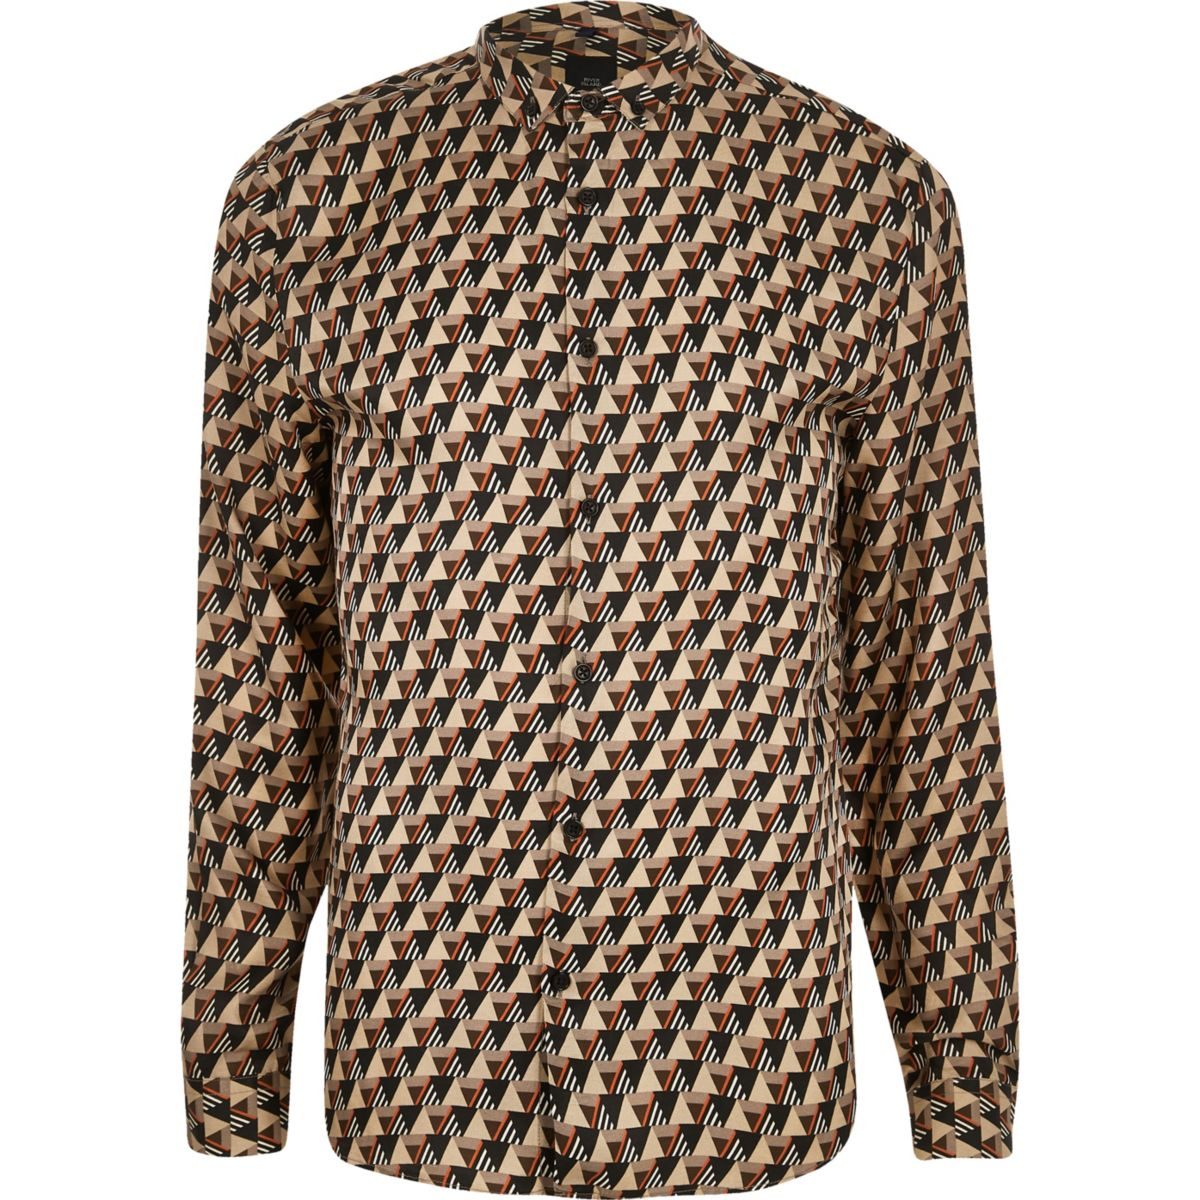 River Island printed shirt - £32 - For the nights when you go out, out